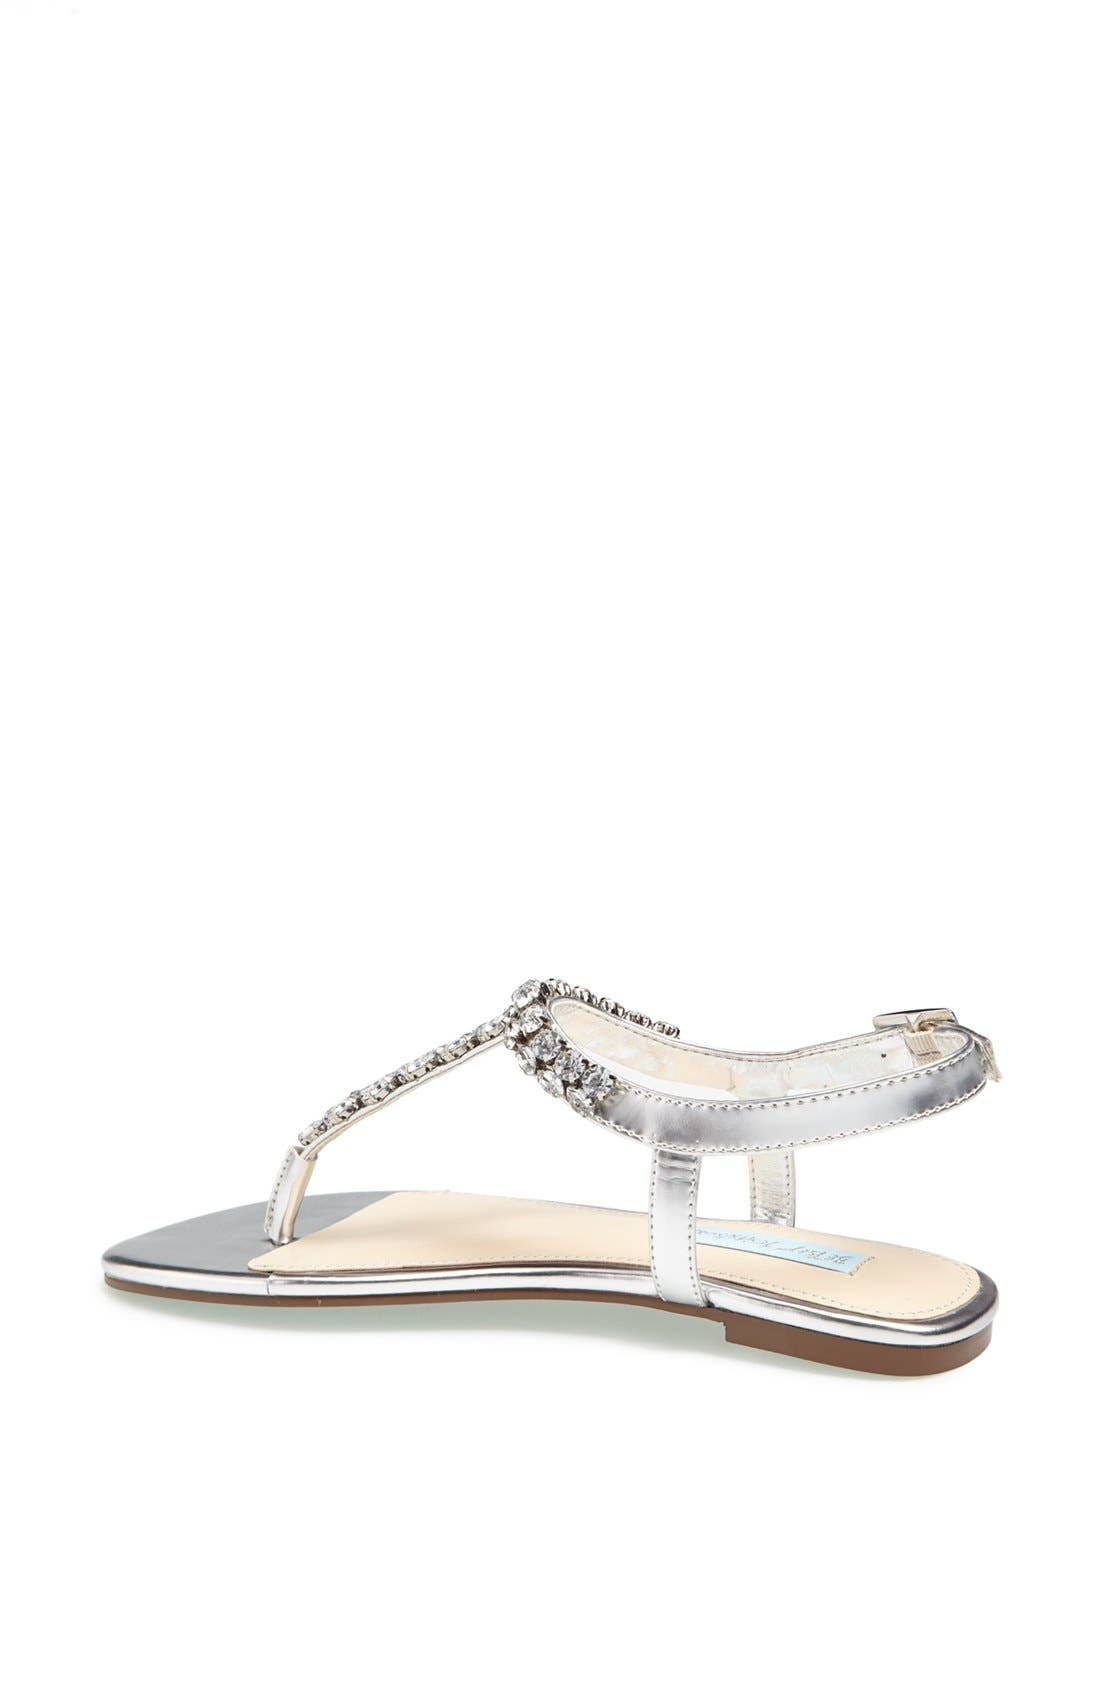 Alternate Image 2  - Blue by Betsey Johnson 'Spark' Crystal Embellished Thong Sandal